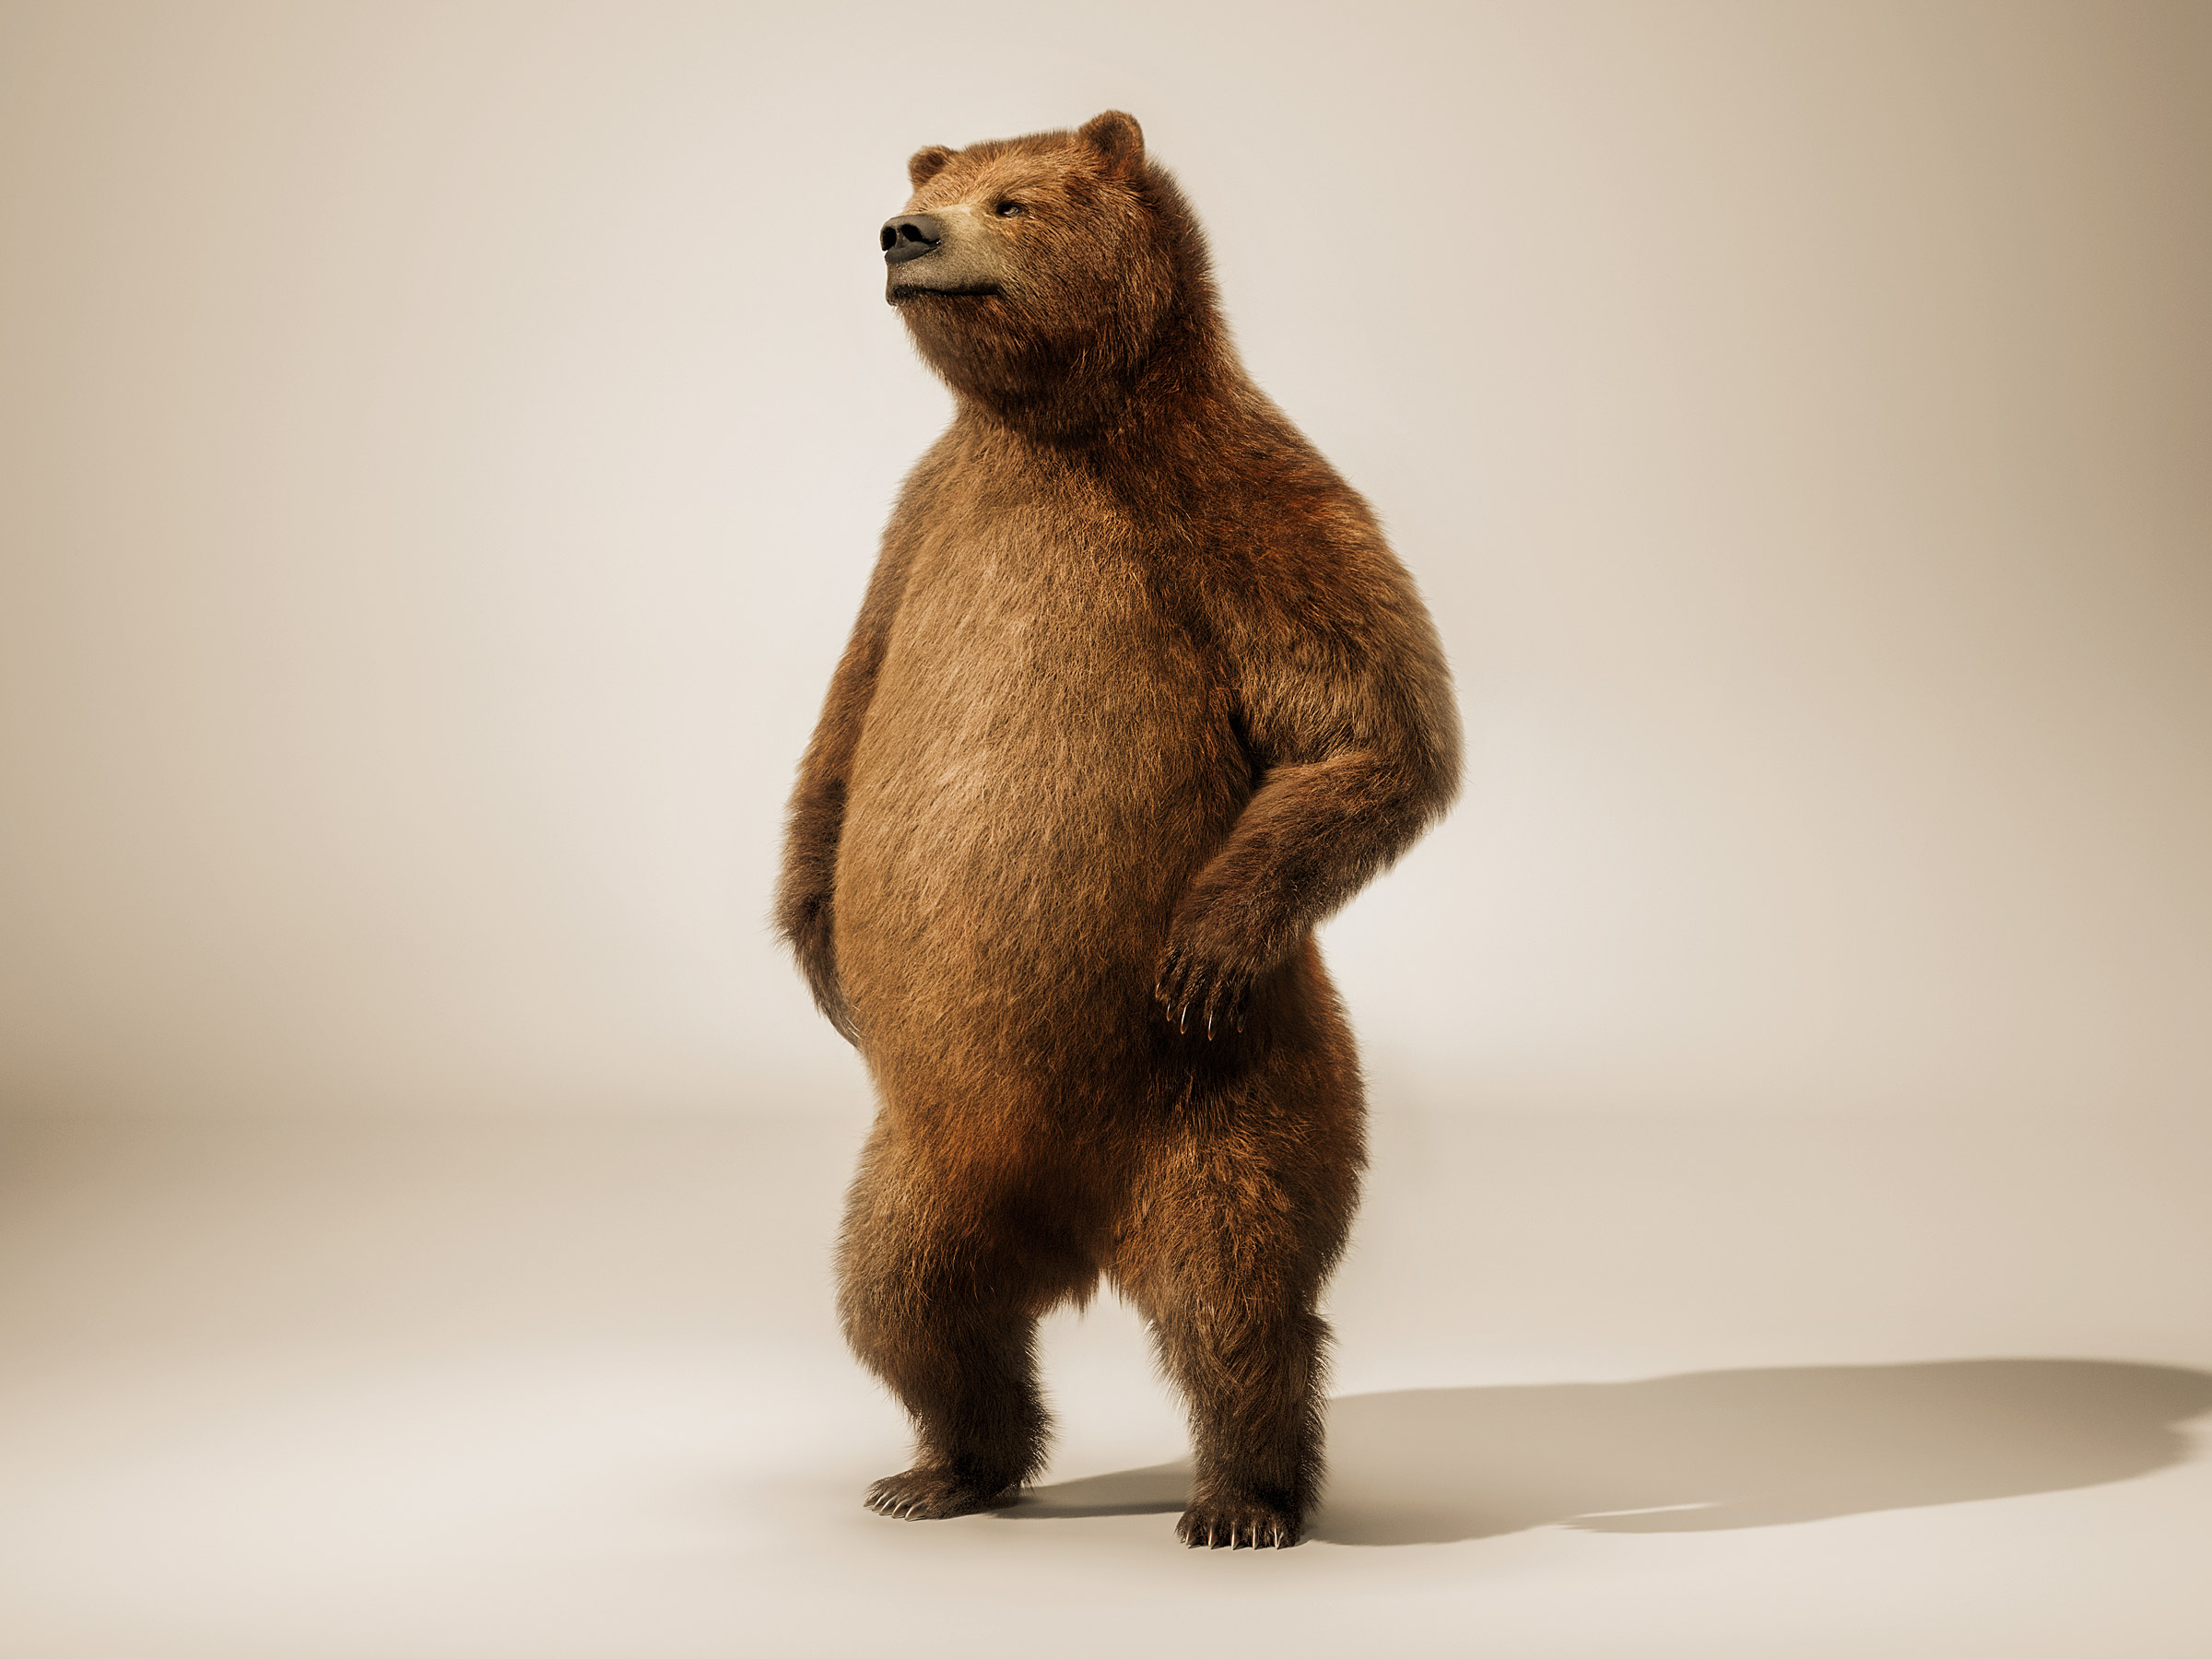 brown_bear_standing_tank_cgi_london_post_production